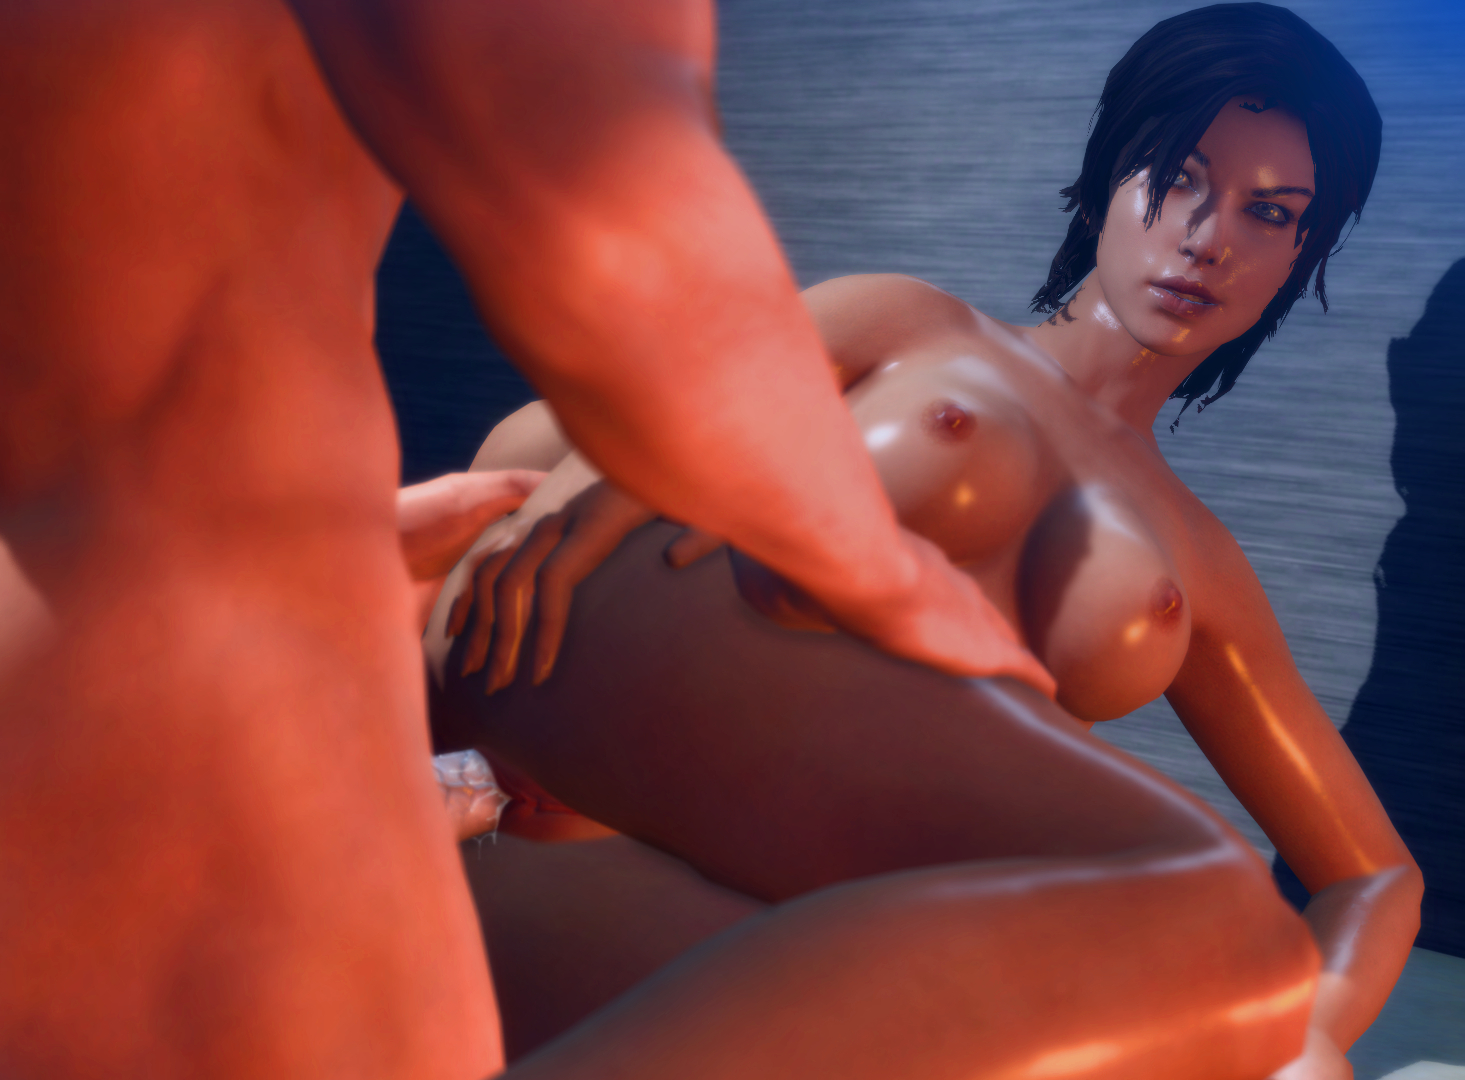 Lara craft tomb rider nude porn photos pornos toons